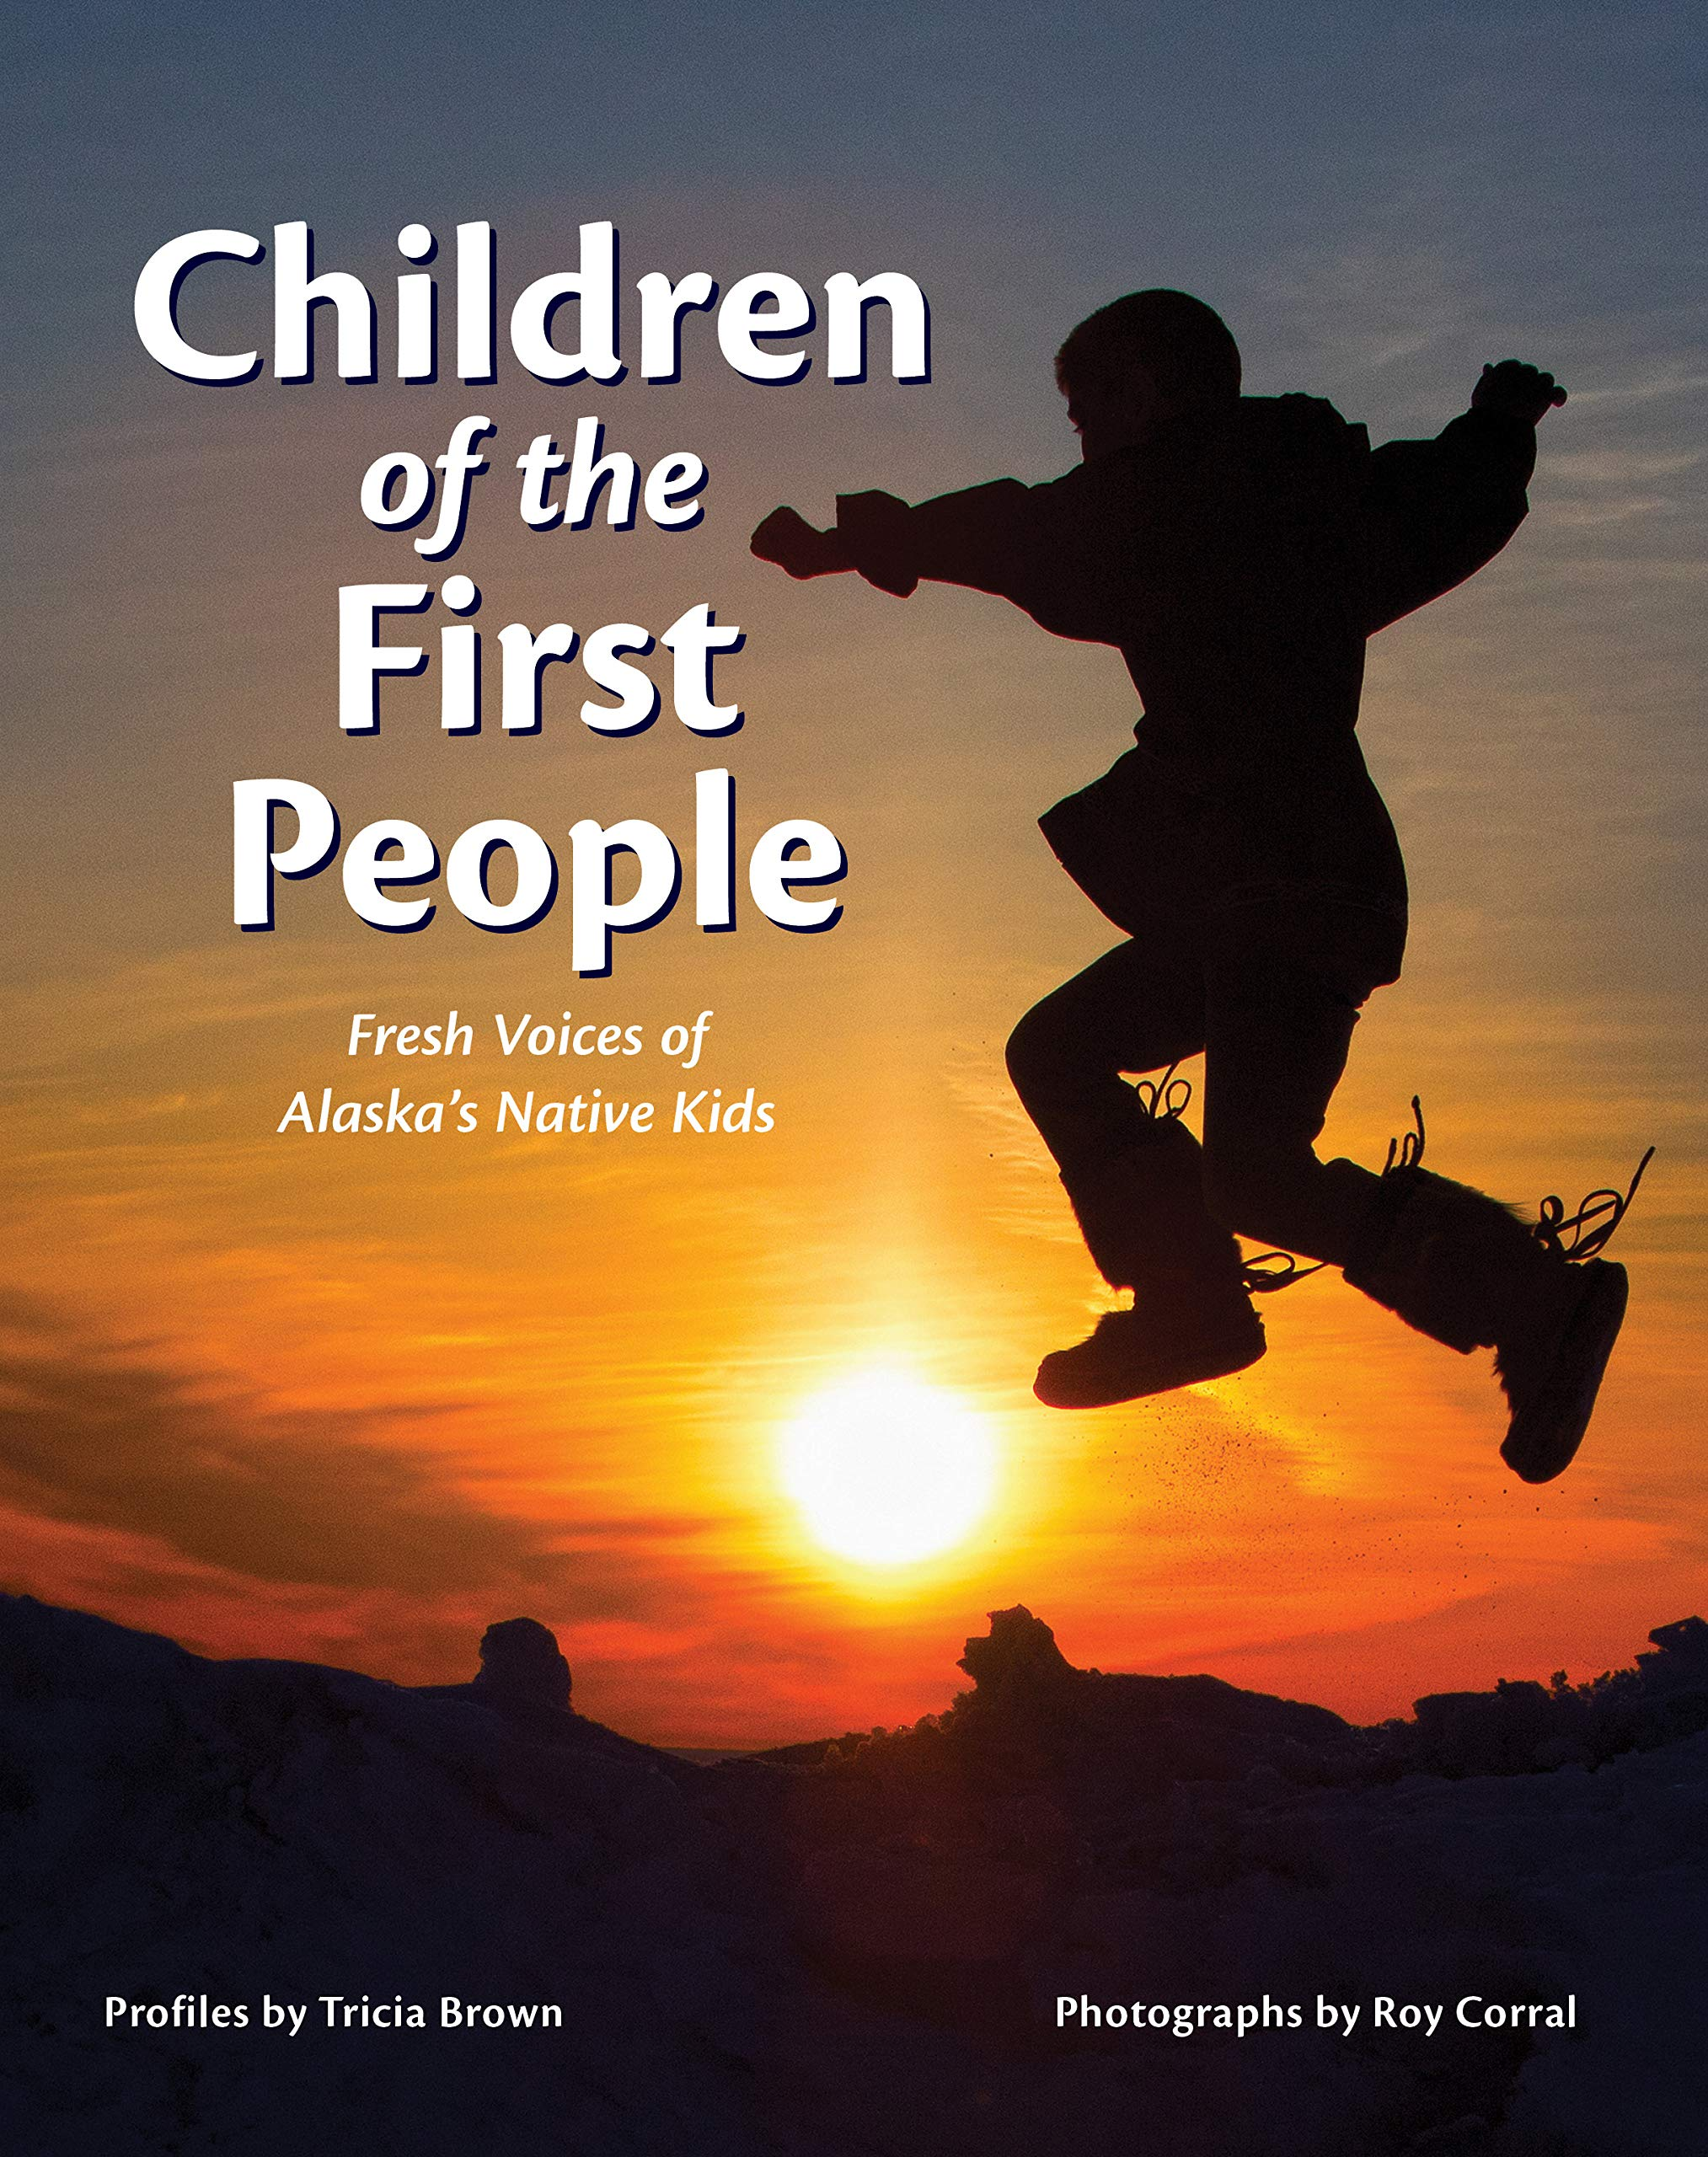 Alaska Northwest Books; Reprint edition (April 9, 2019)